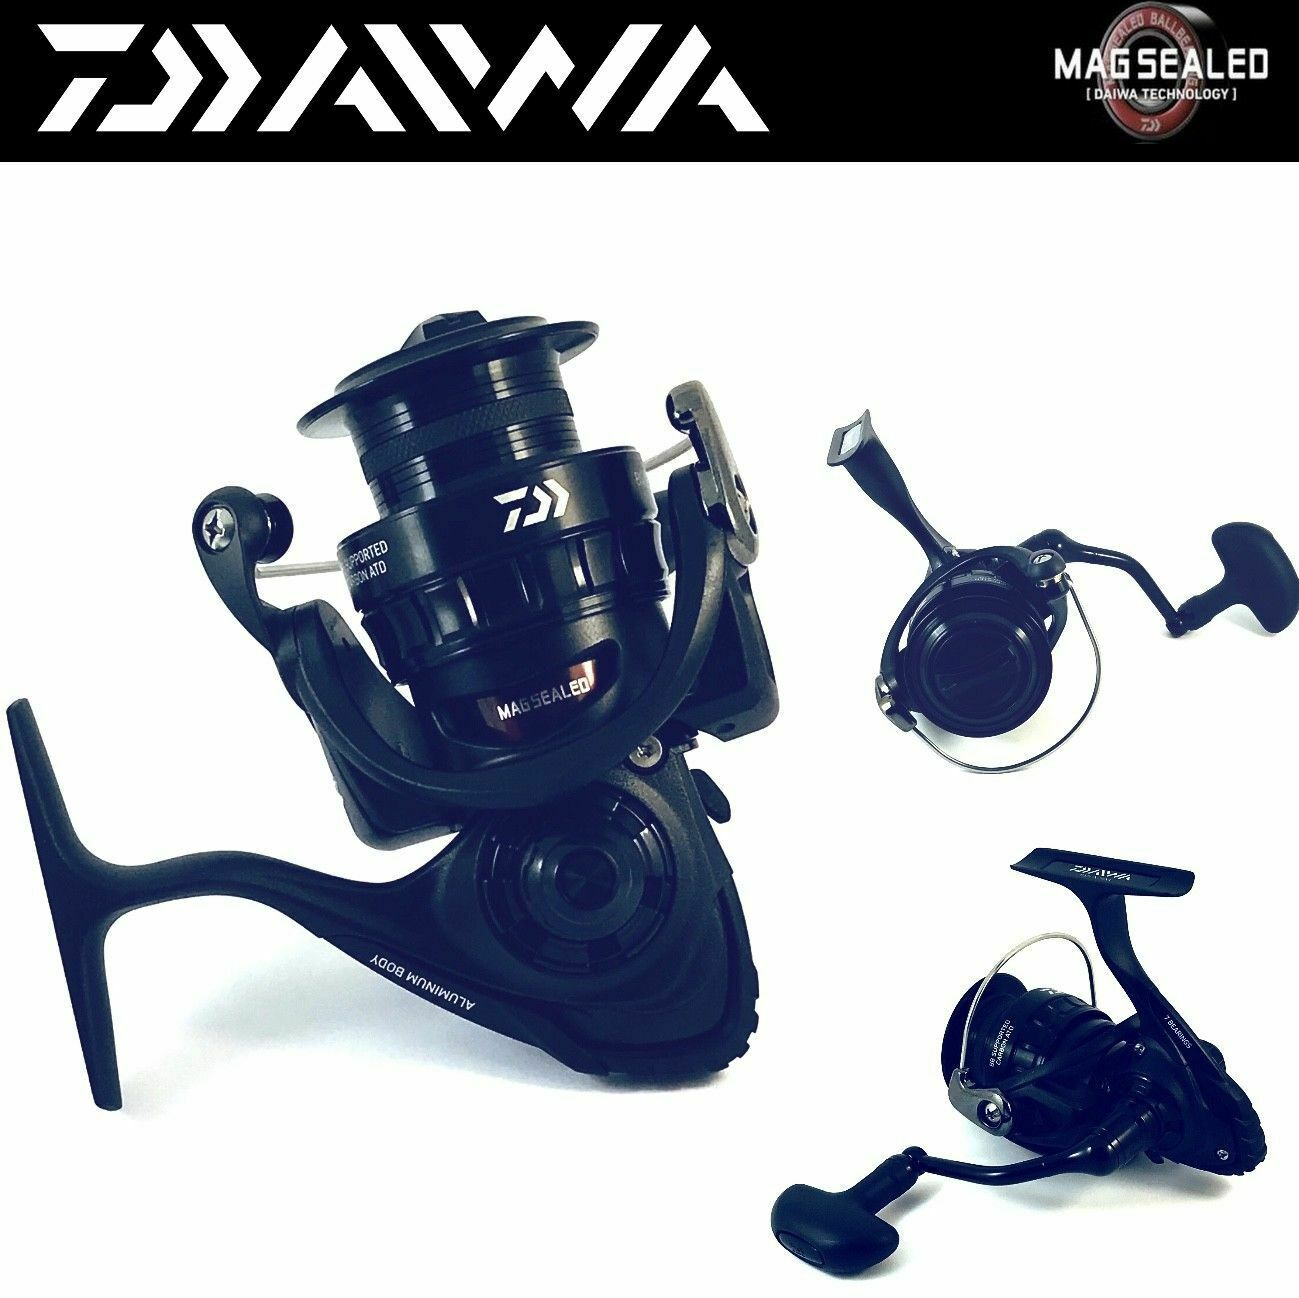 DAIWA MAGSEALED SALTWATER SPINNING REEL  BG  we take customers as our god